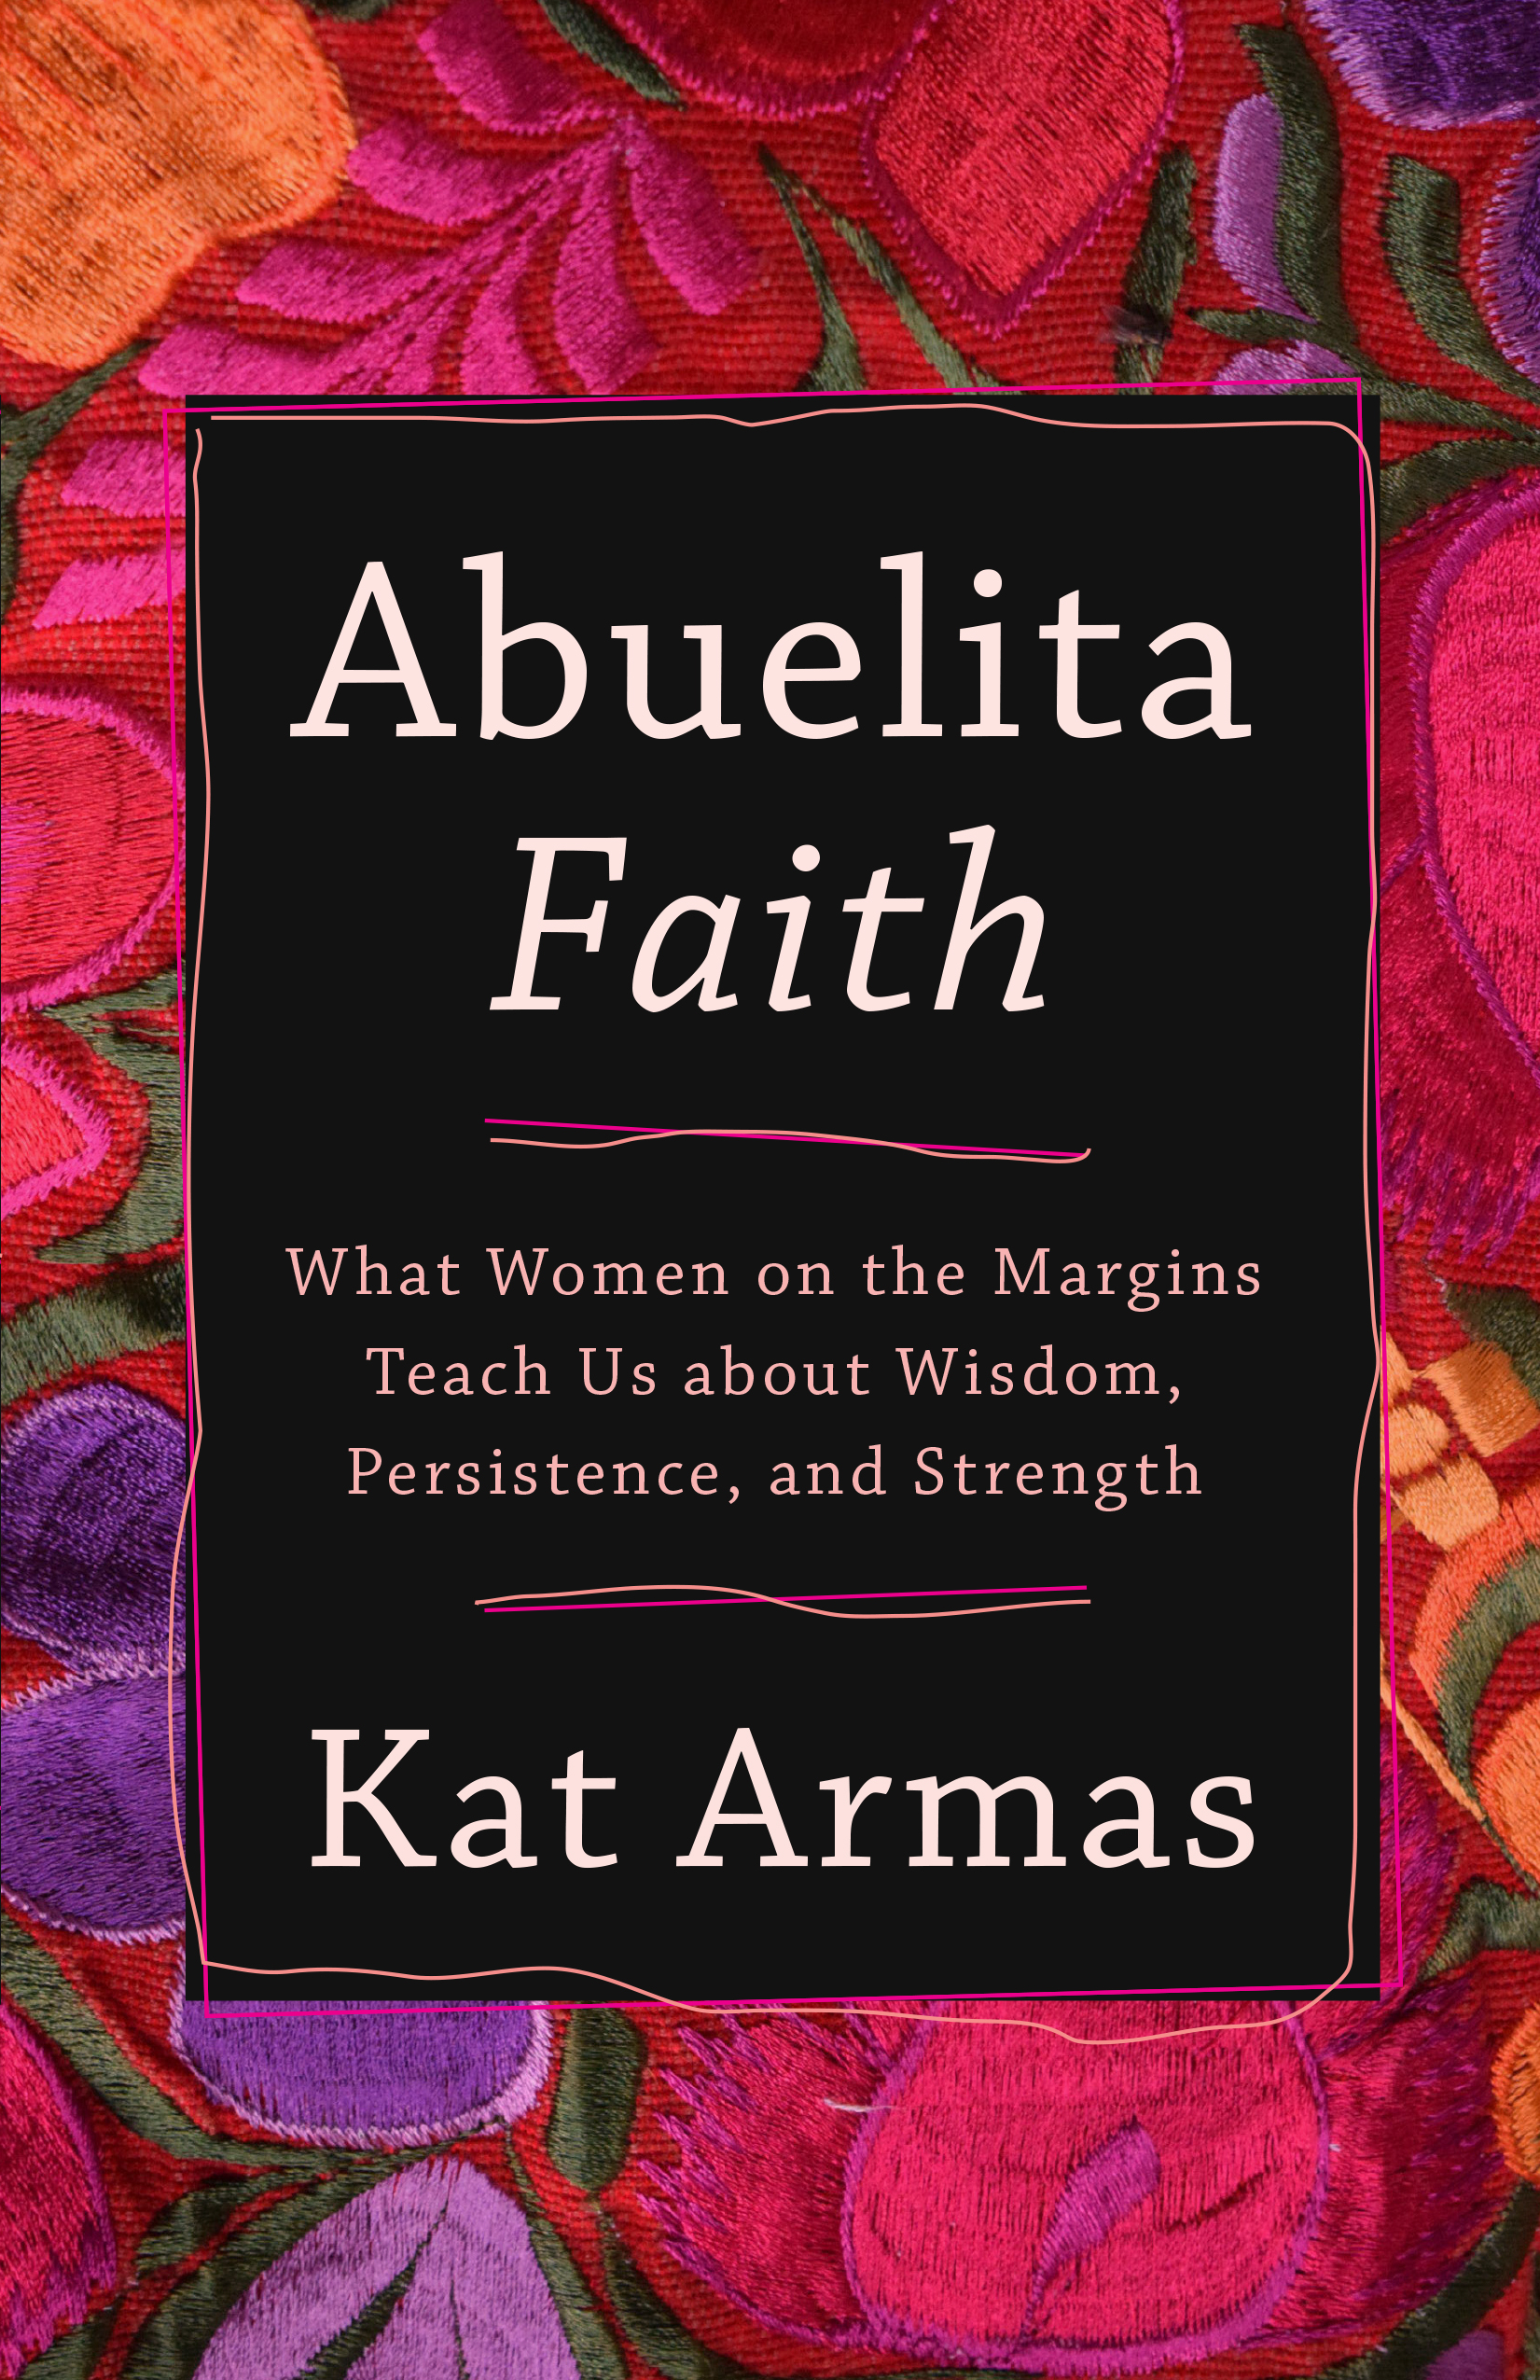 Abuelita Faith: What Women on the Margins Teach Us about Wisdom, Persistence, and Strength by Kat Armas